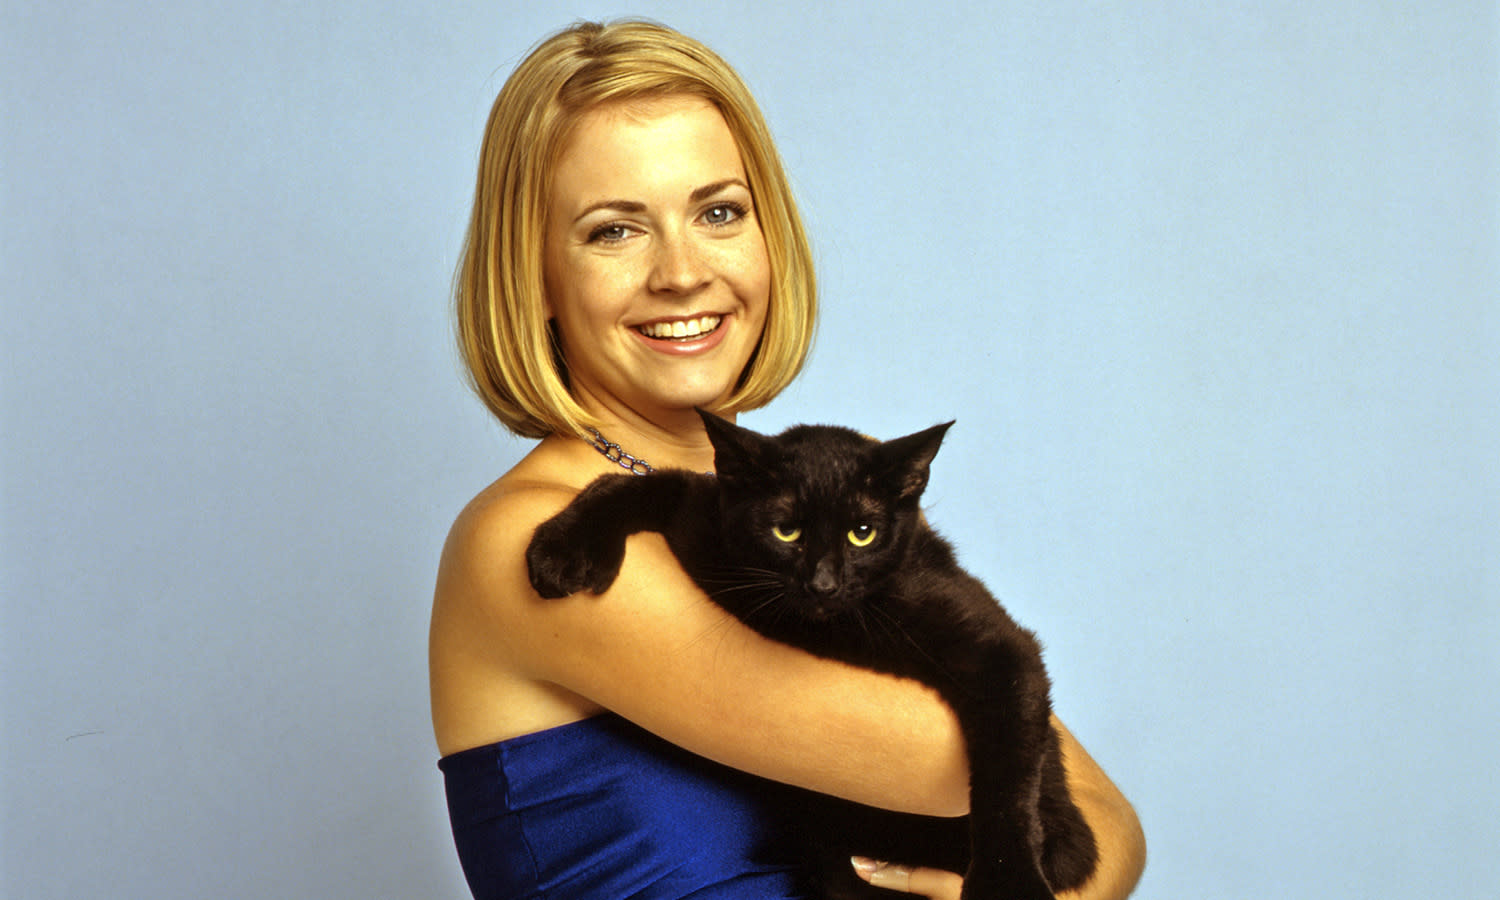 'Sabrina the Teenage Witch' cast reunite as Melissa Joan Hart shares photo with former co-stars